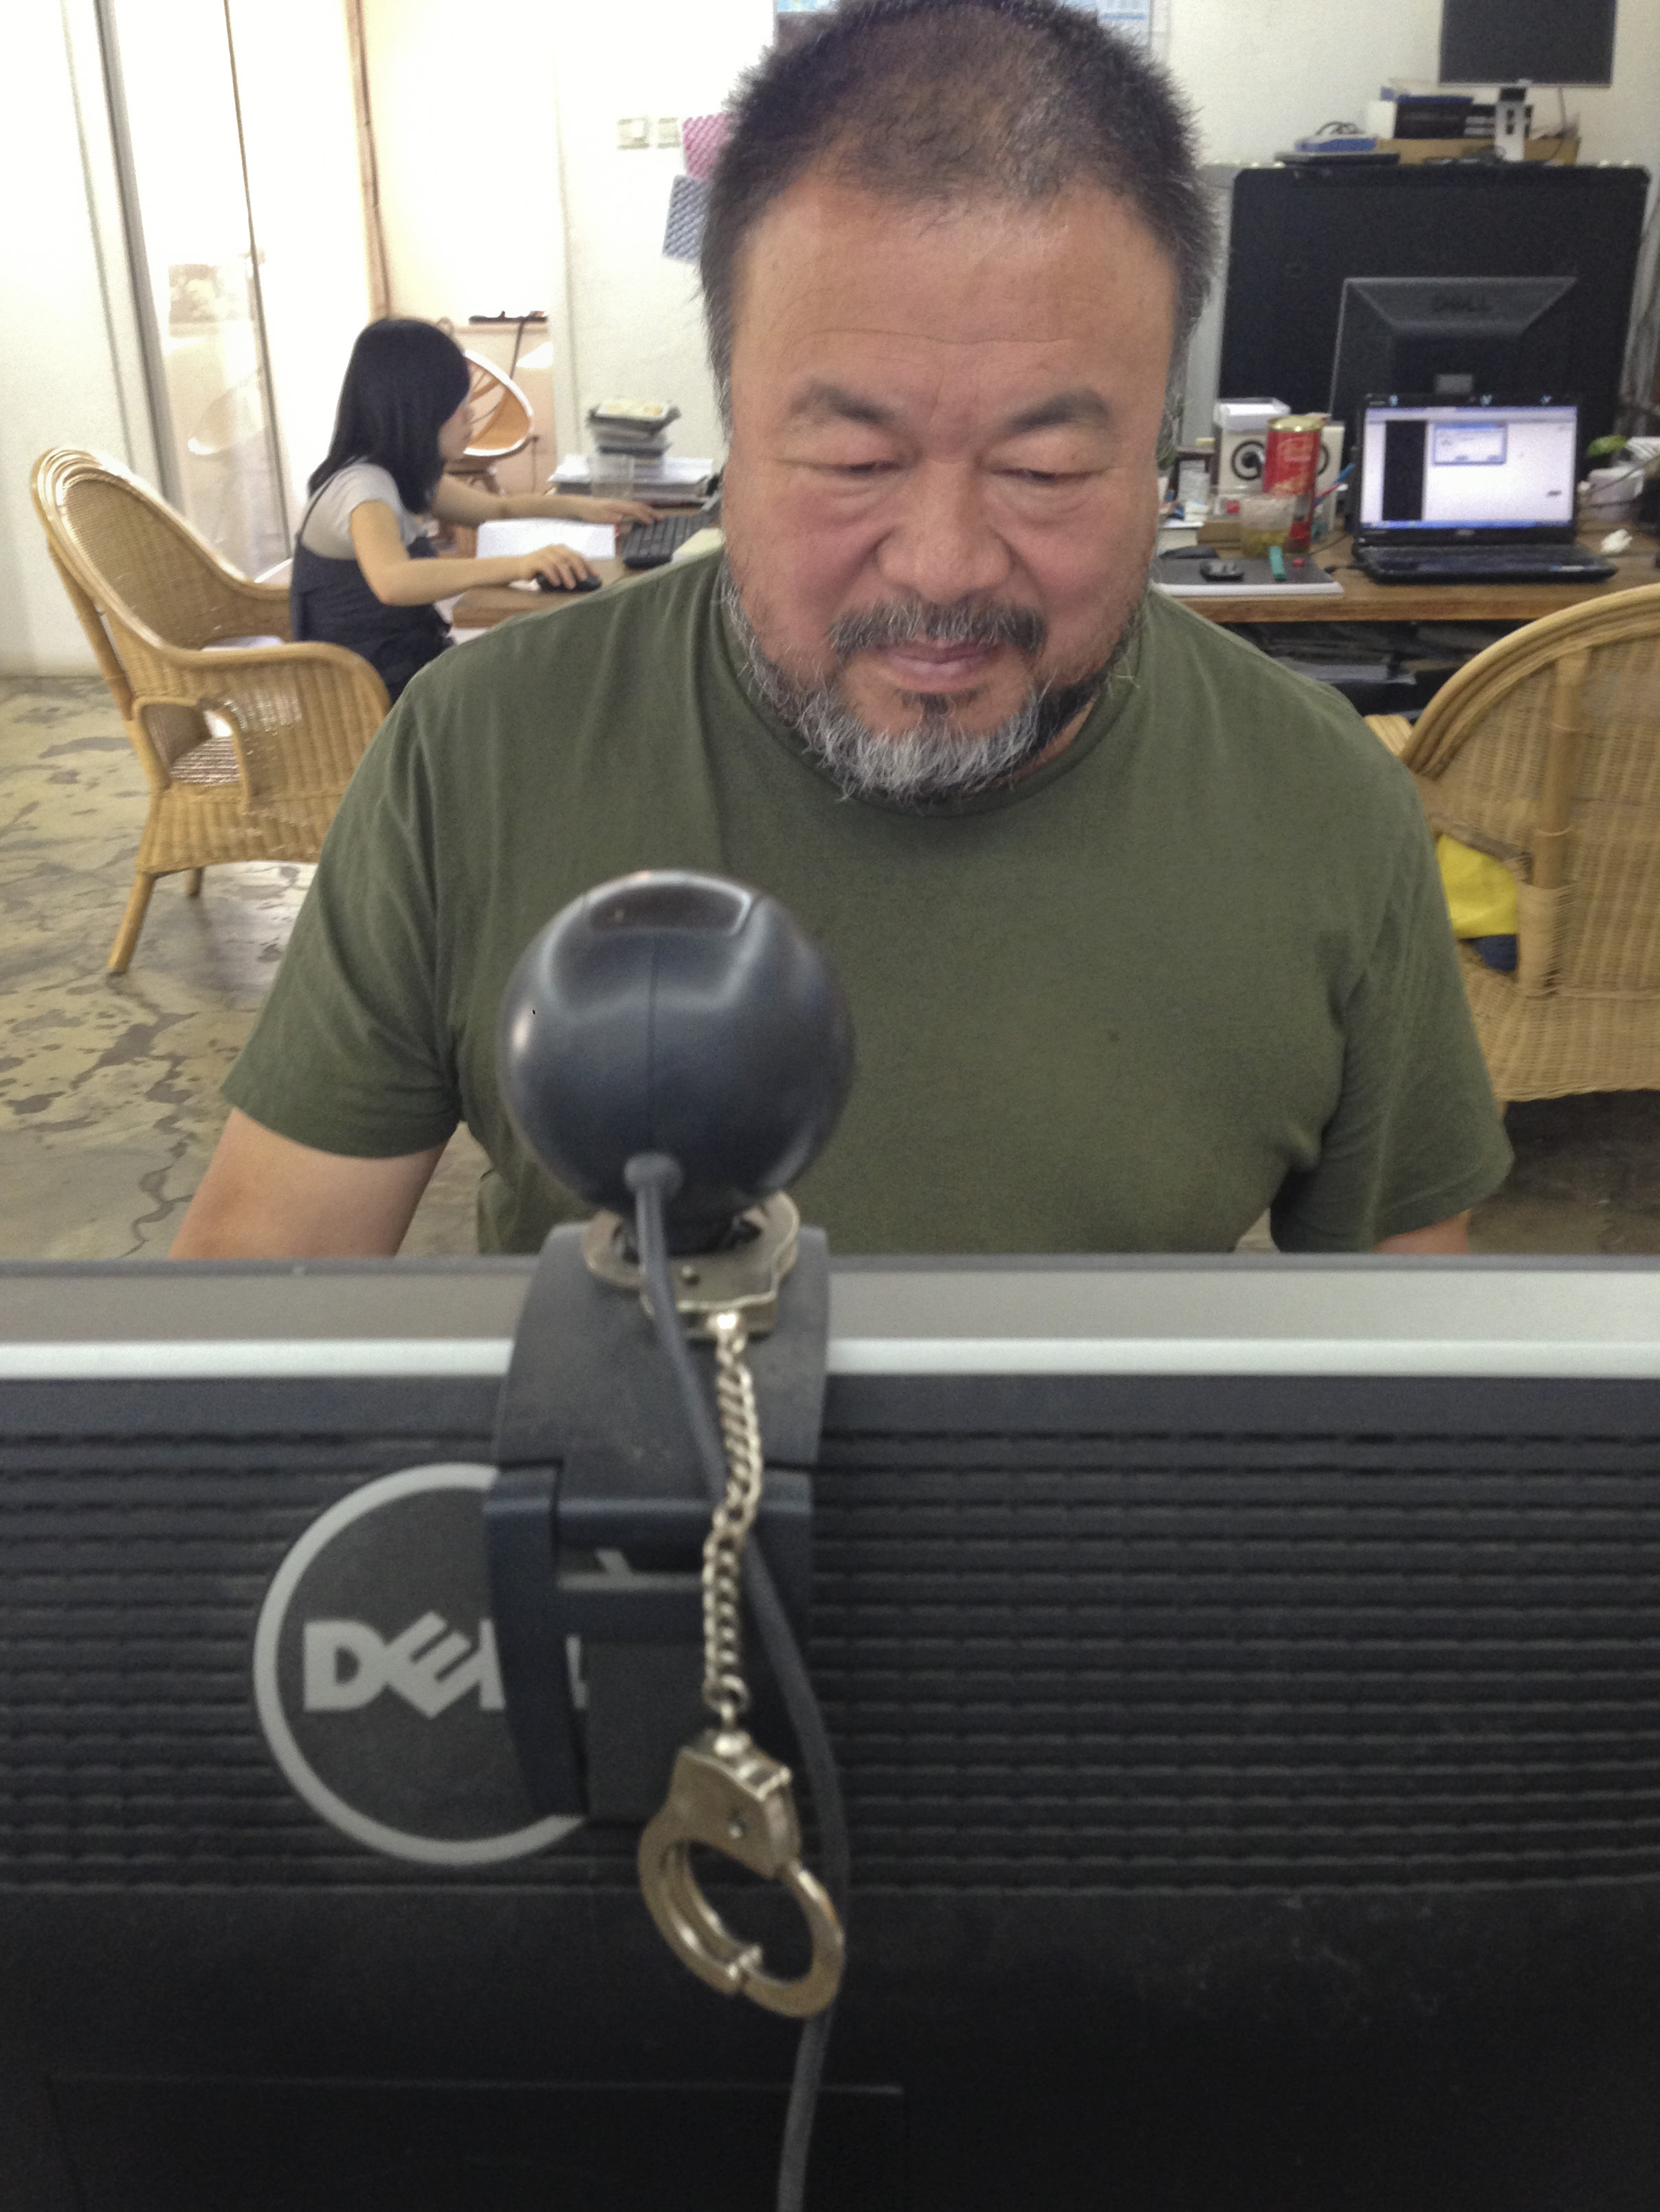 Ai Weiwei monitors the reaction to his new song on Twitter on Wednesday, the day the song was released.